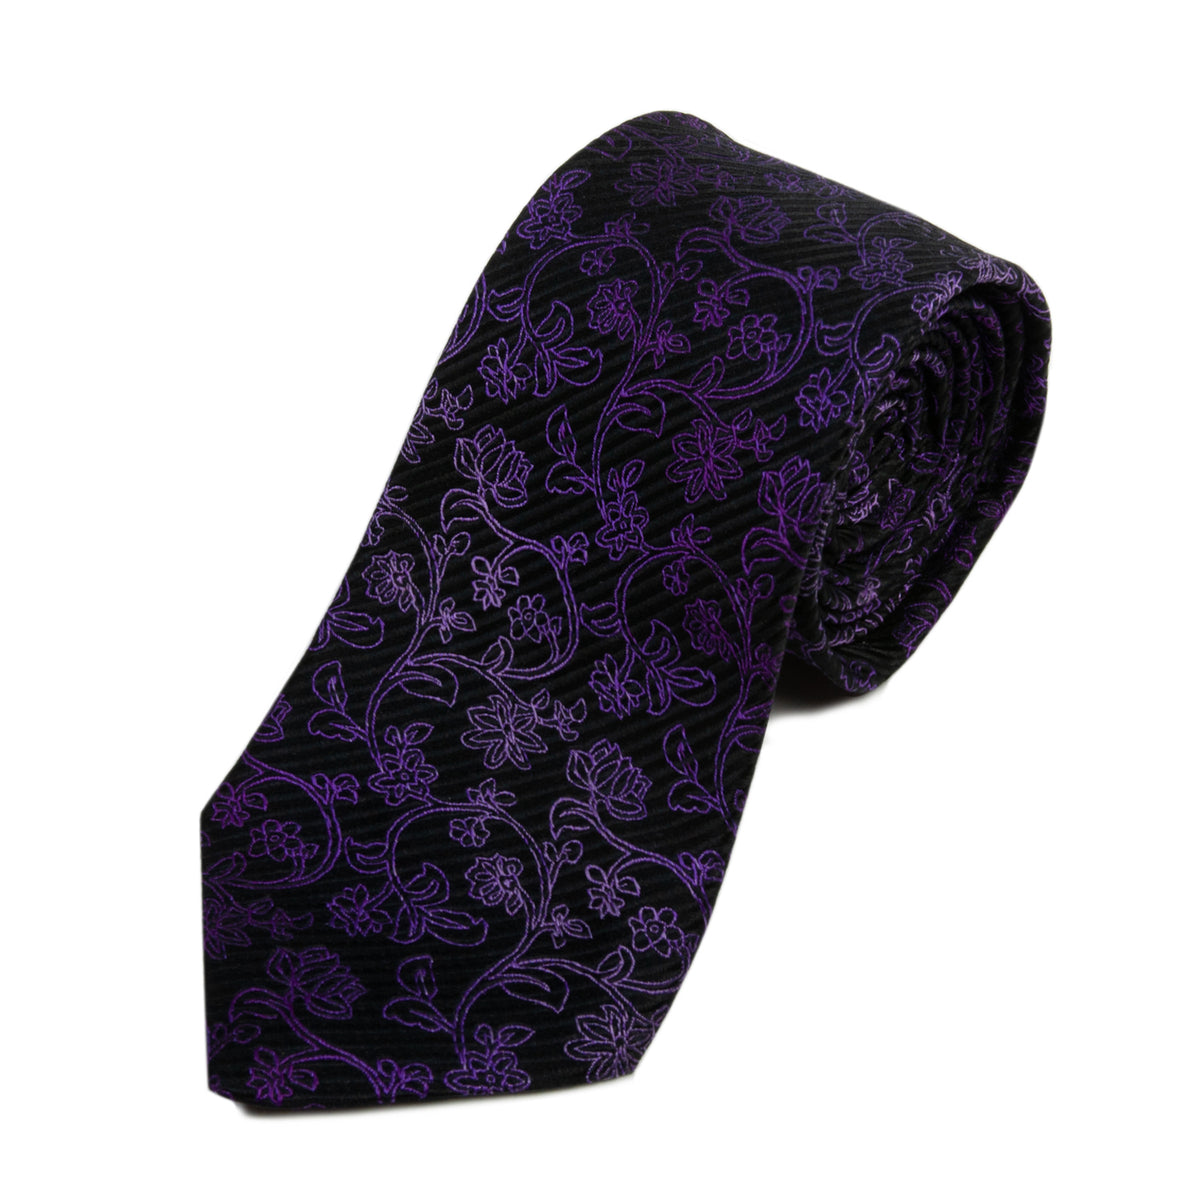 Ted Baker Purple on Black Foral Silk Tie for Luxmrkt.com Menswear Consignment Edmonton